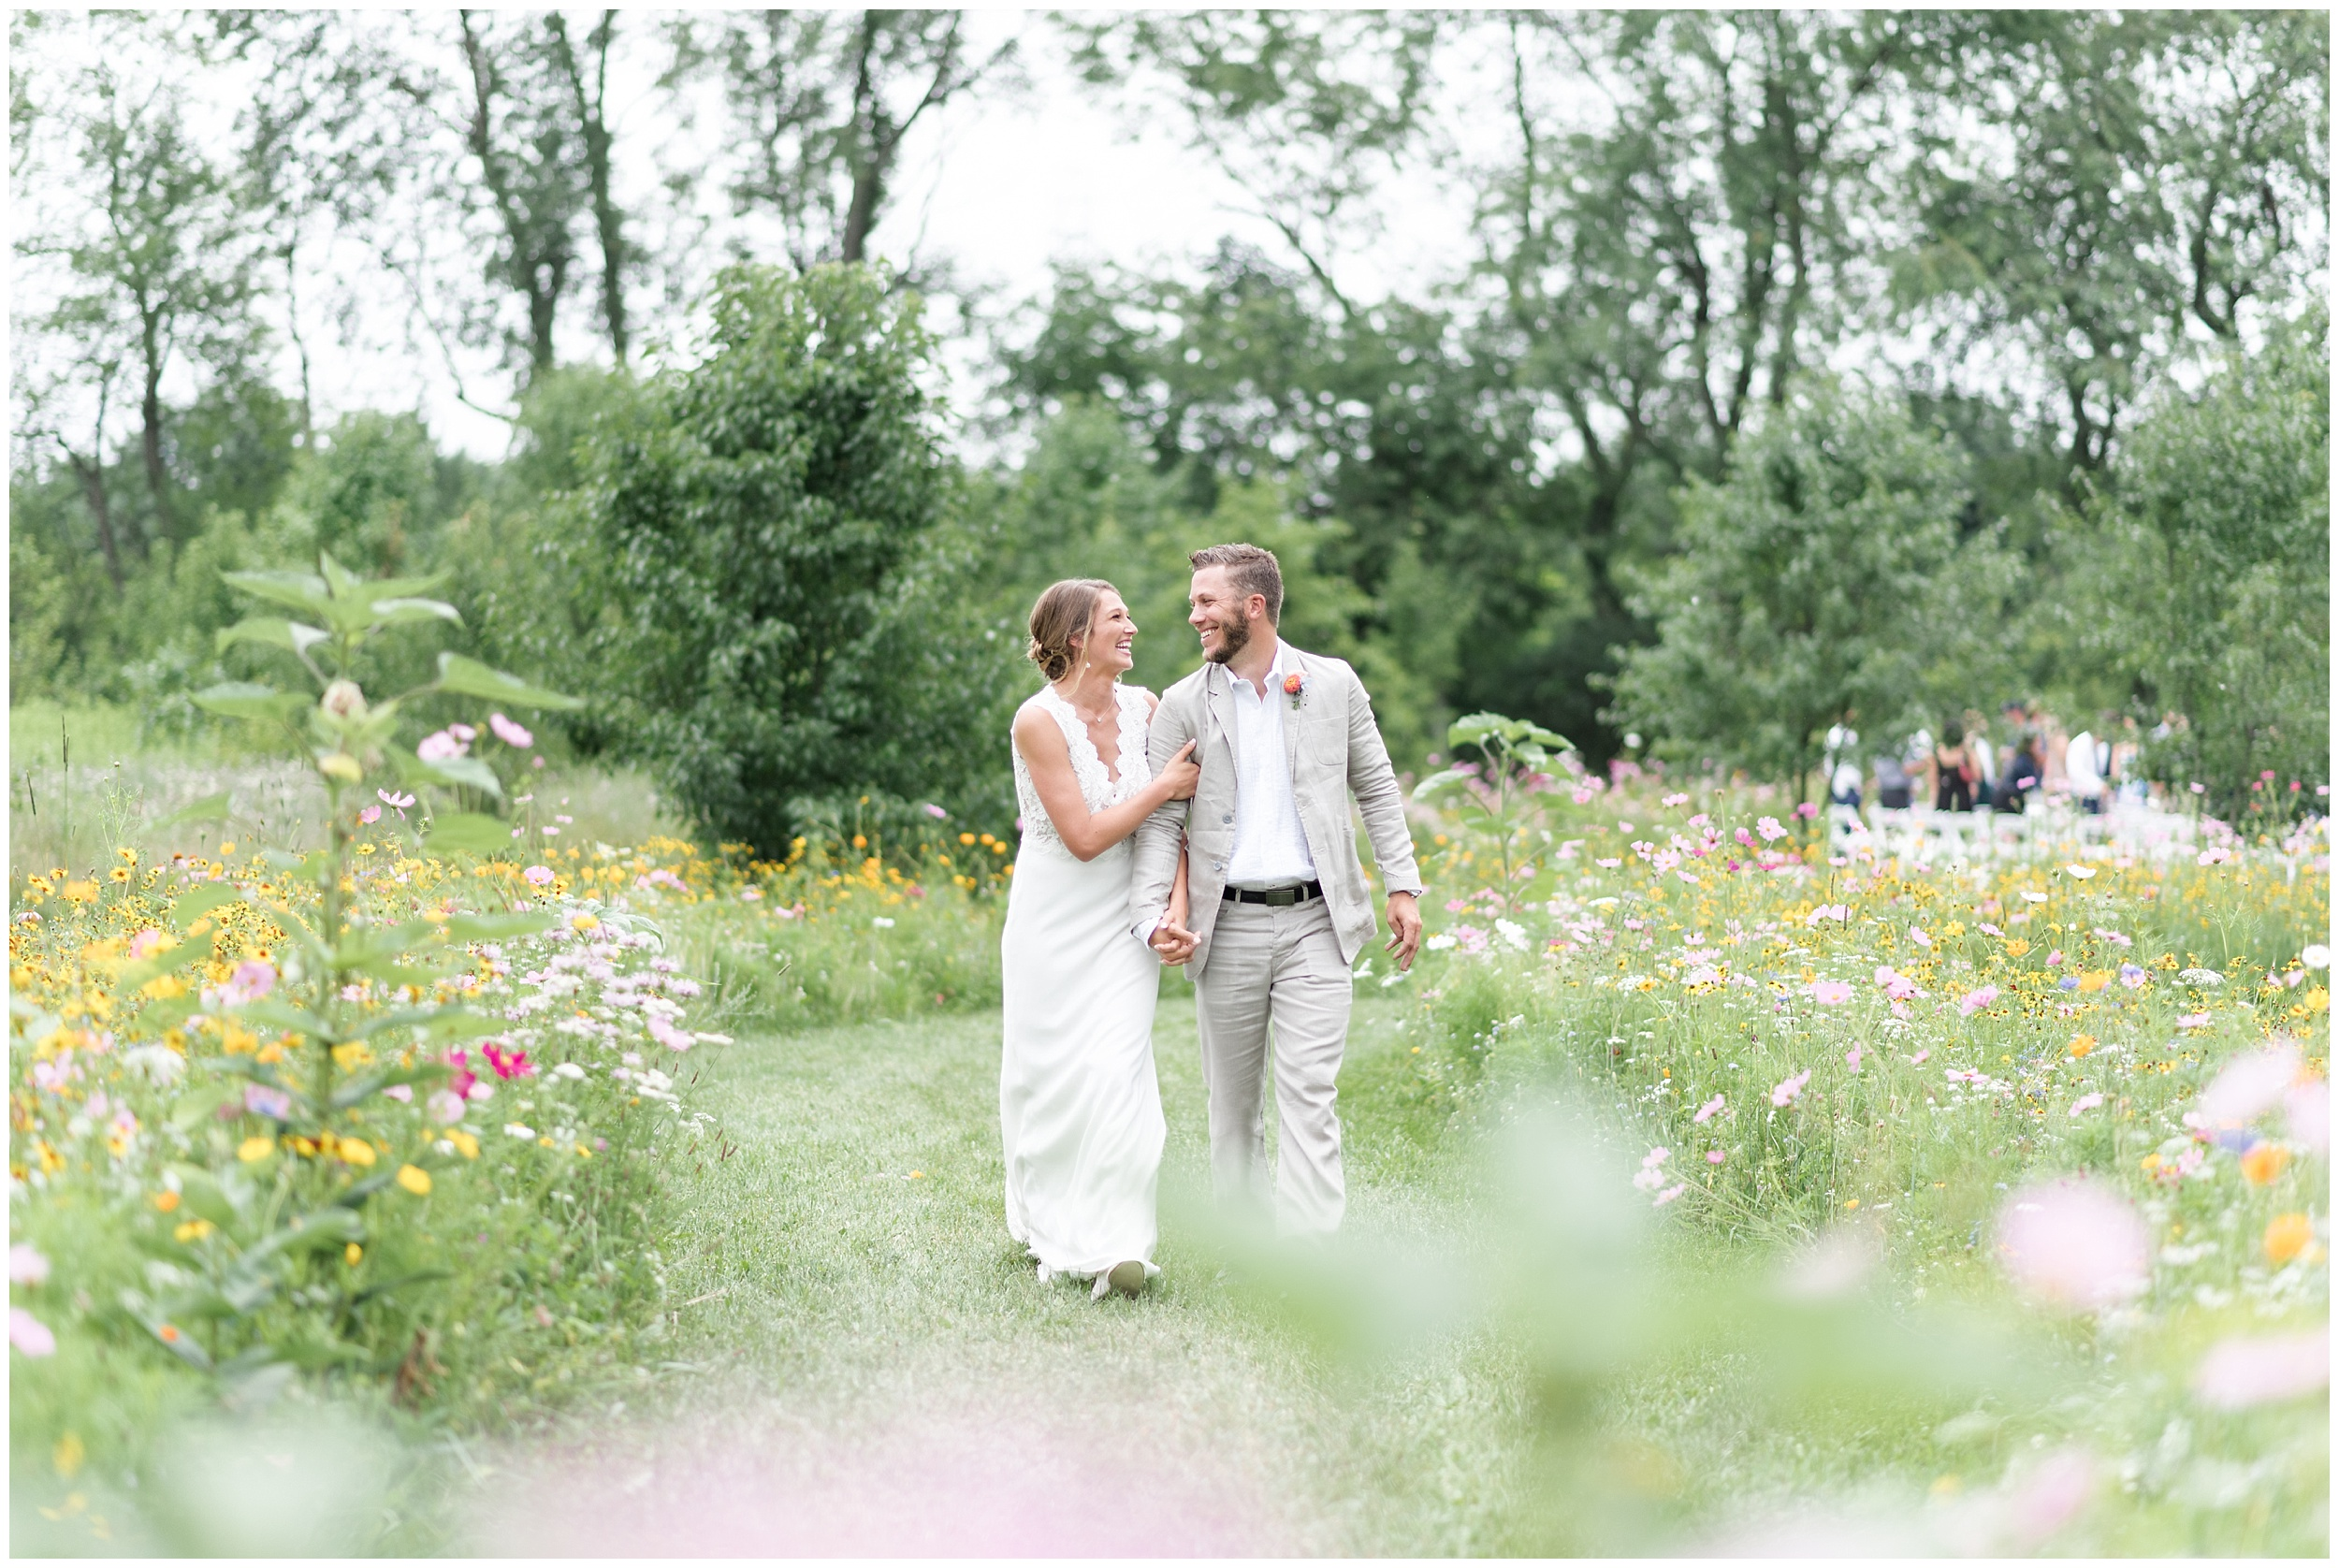 Whimsical-Ethereal-July-Kalamazoo-Wedding-Bright-Airy-Documentary-Milwaukee-Photographer_0045.jpg